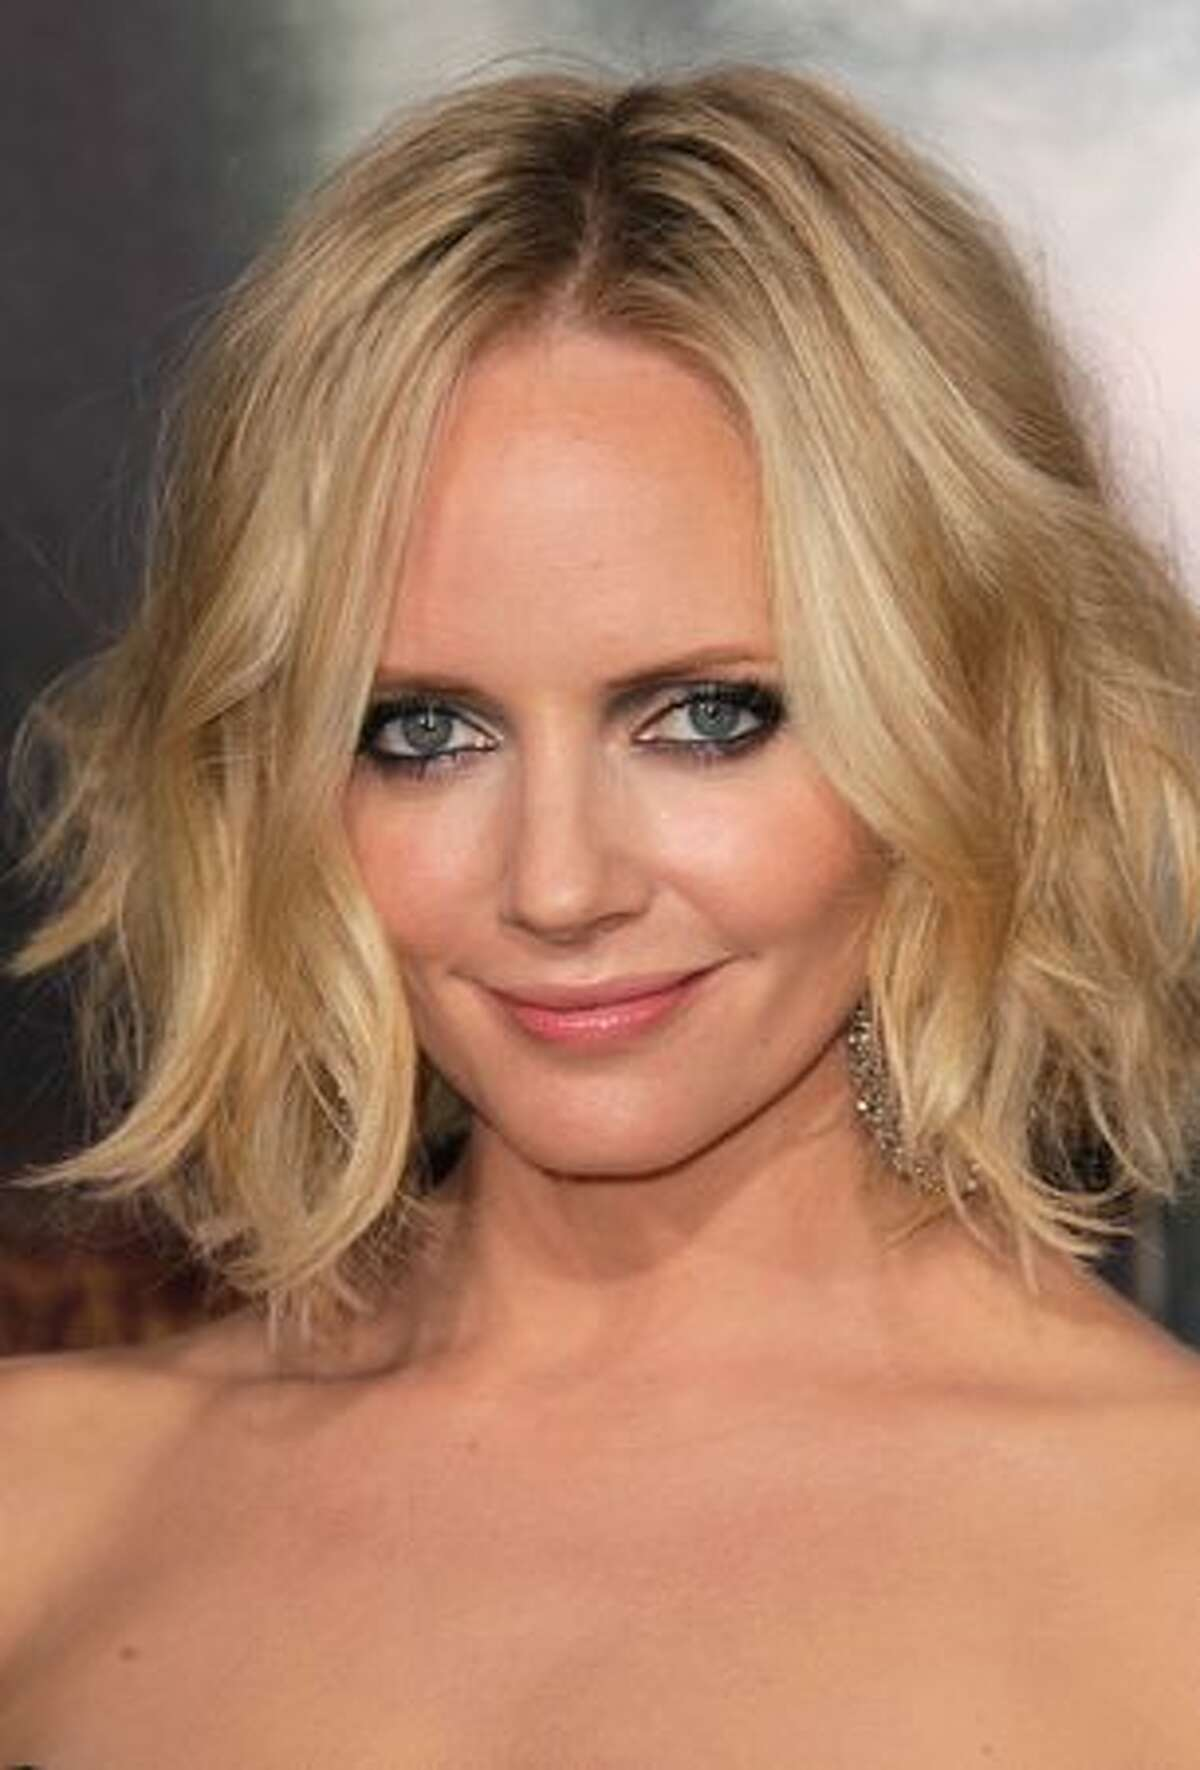 """Actress Marley Shelton attends the premiere of Warner Brothers' """"The Rite"""" at Grauman's Chinese Theatre in Los Angeles, California."""